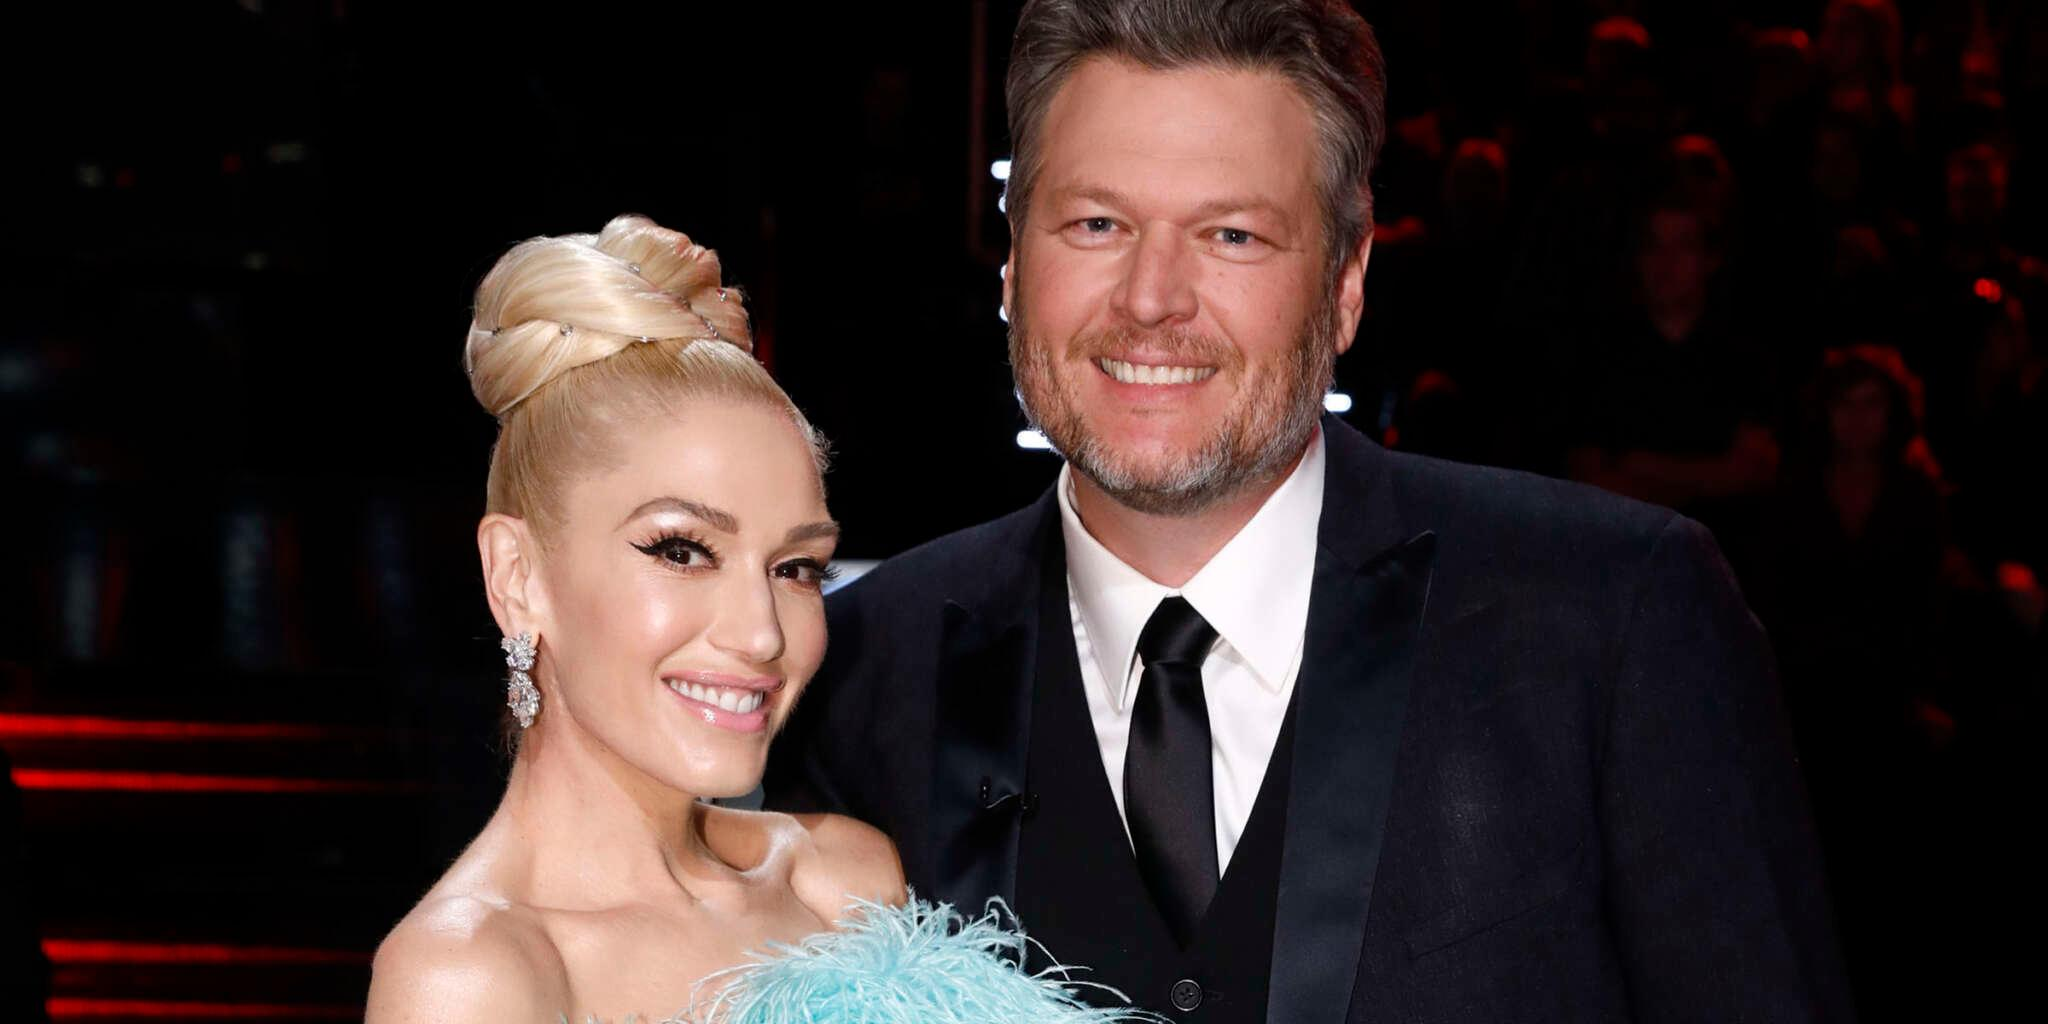 Gwen Stefani Reveals Exclusive Details About Her Engagement - Says That Both She And Blake Shelton 'Started Bawling!'